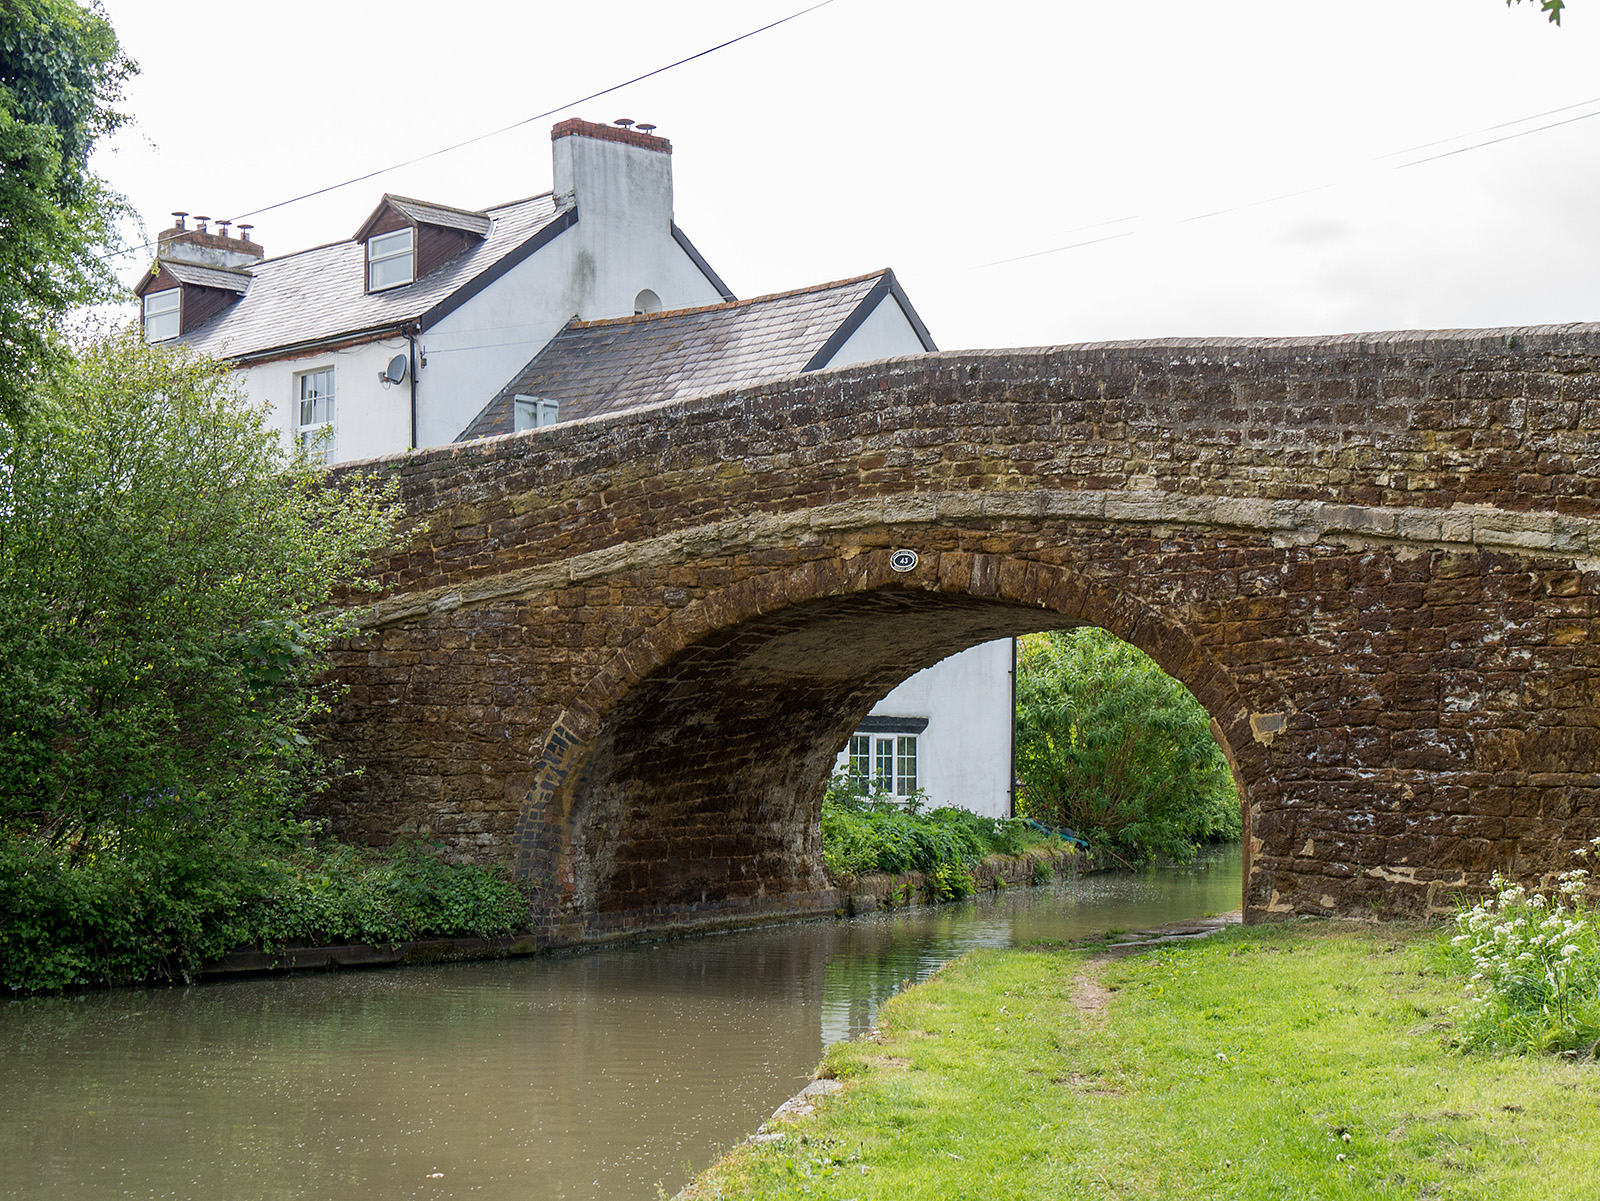 Bridge 43 - one of the Banbury Lane bridges